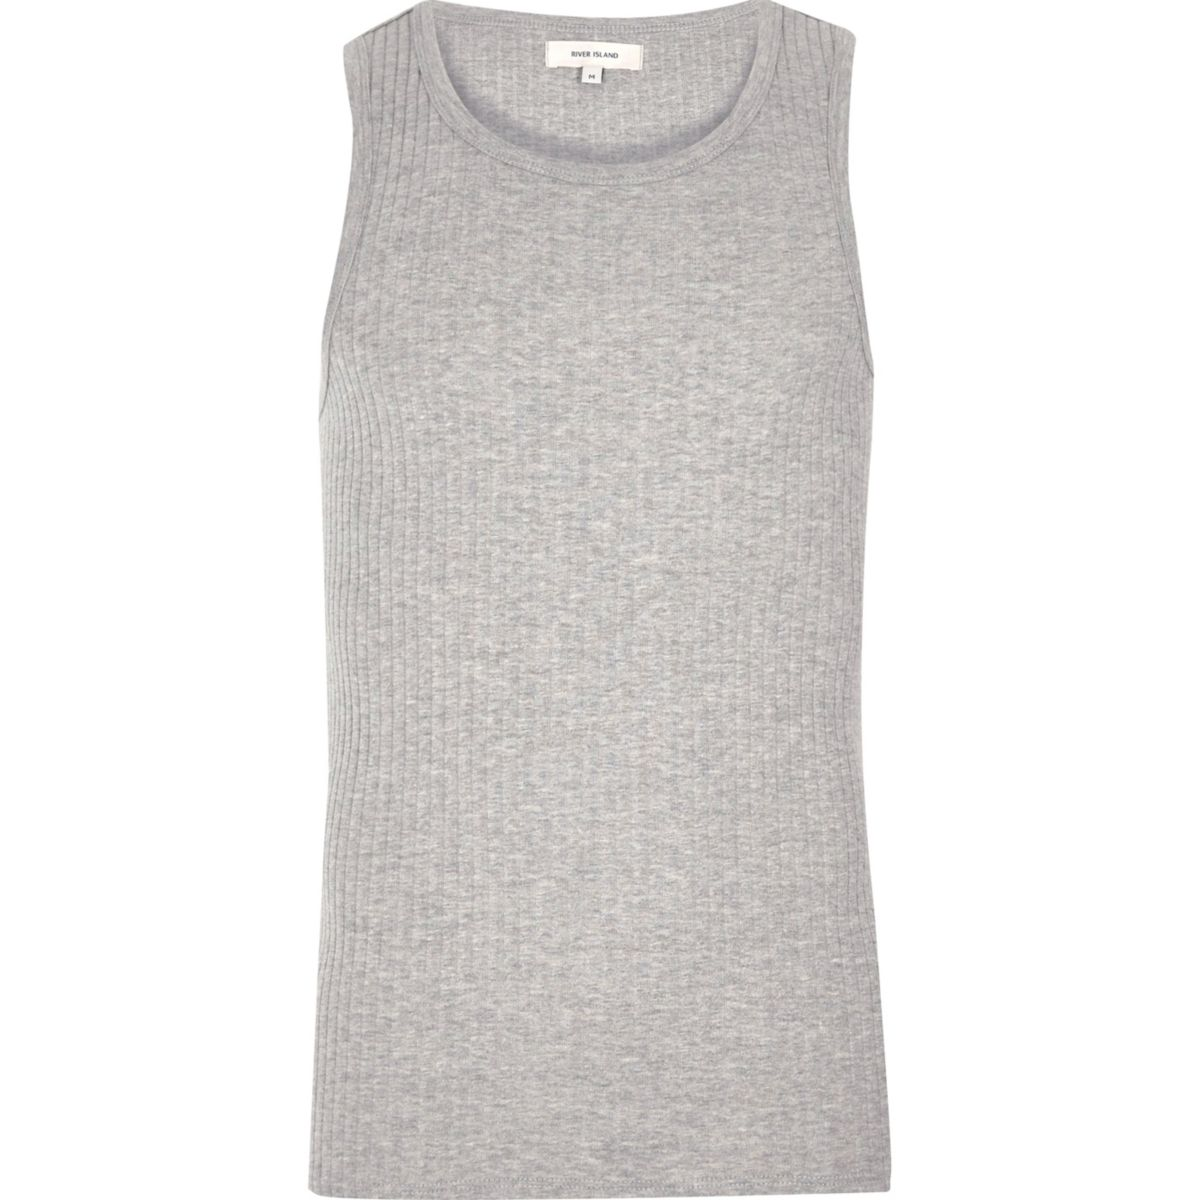 Grey ribbed slim fit tank